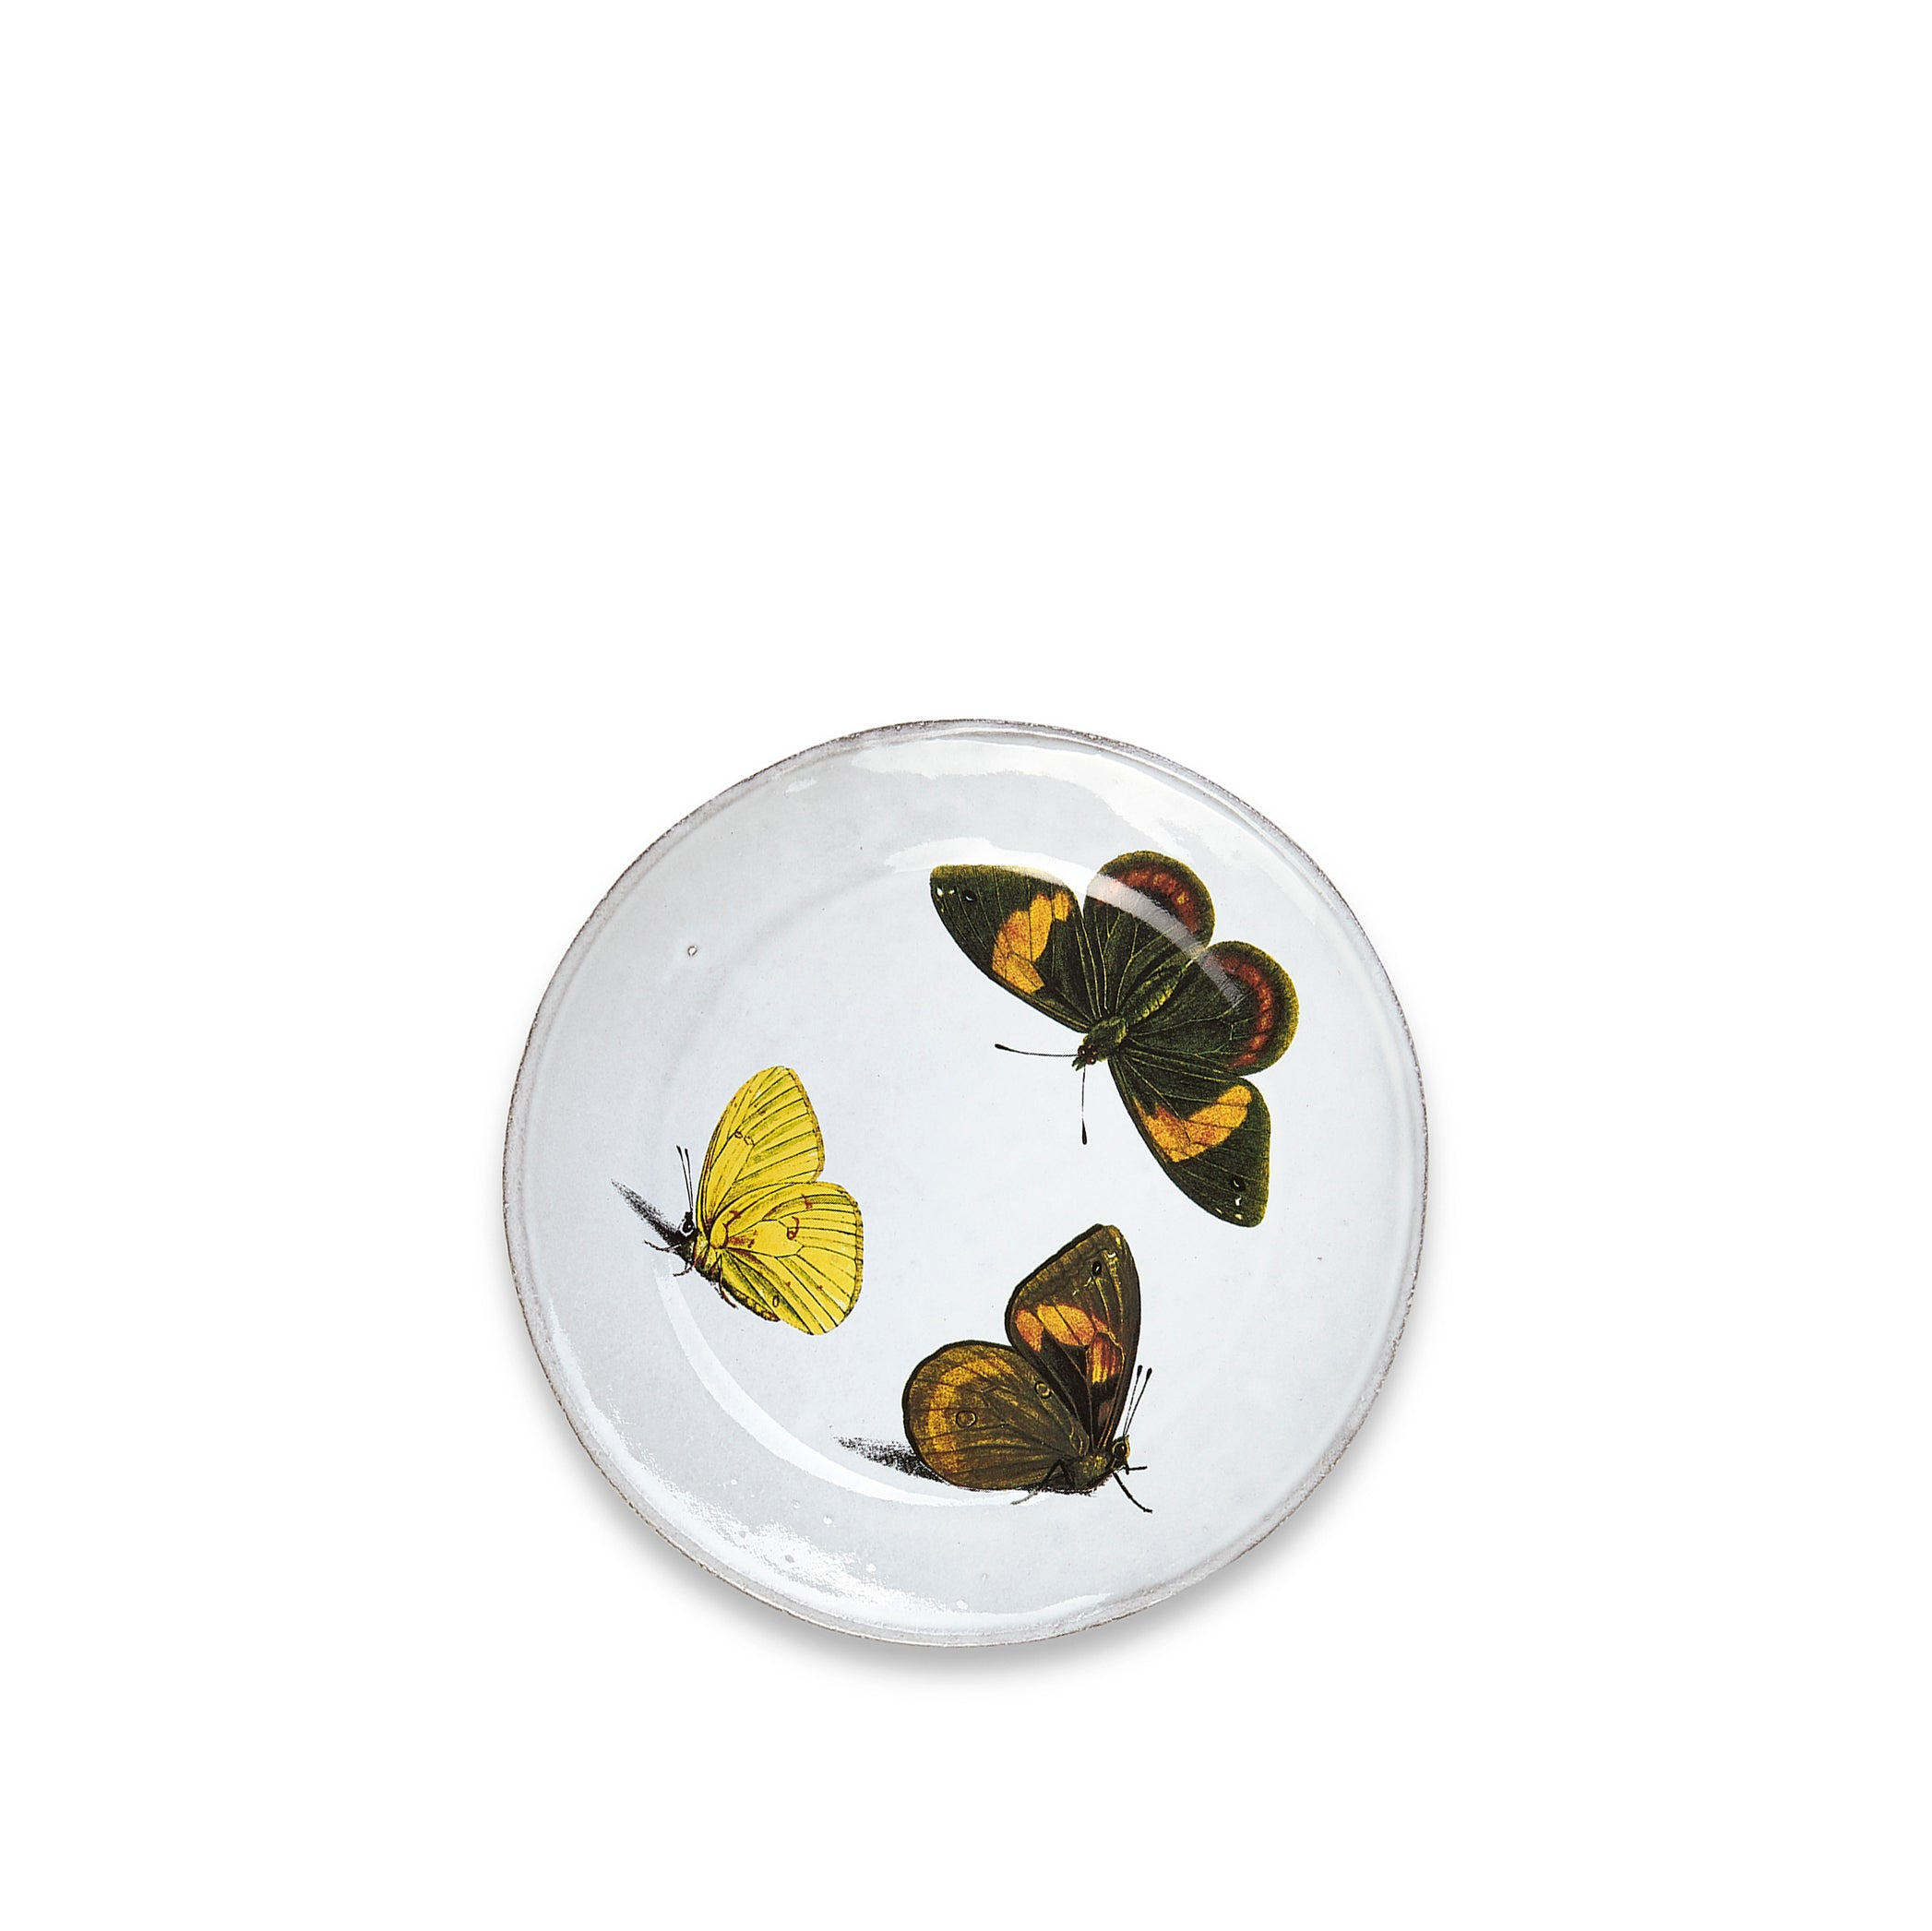 Three Butterflies Plate by Astier de Villatte